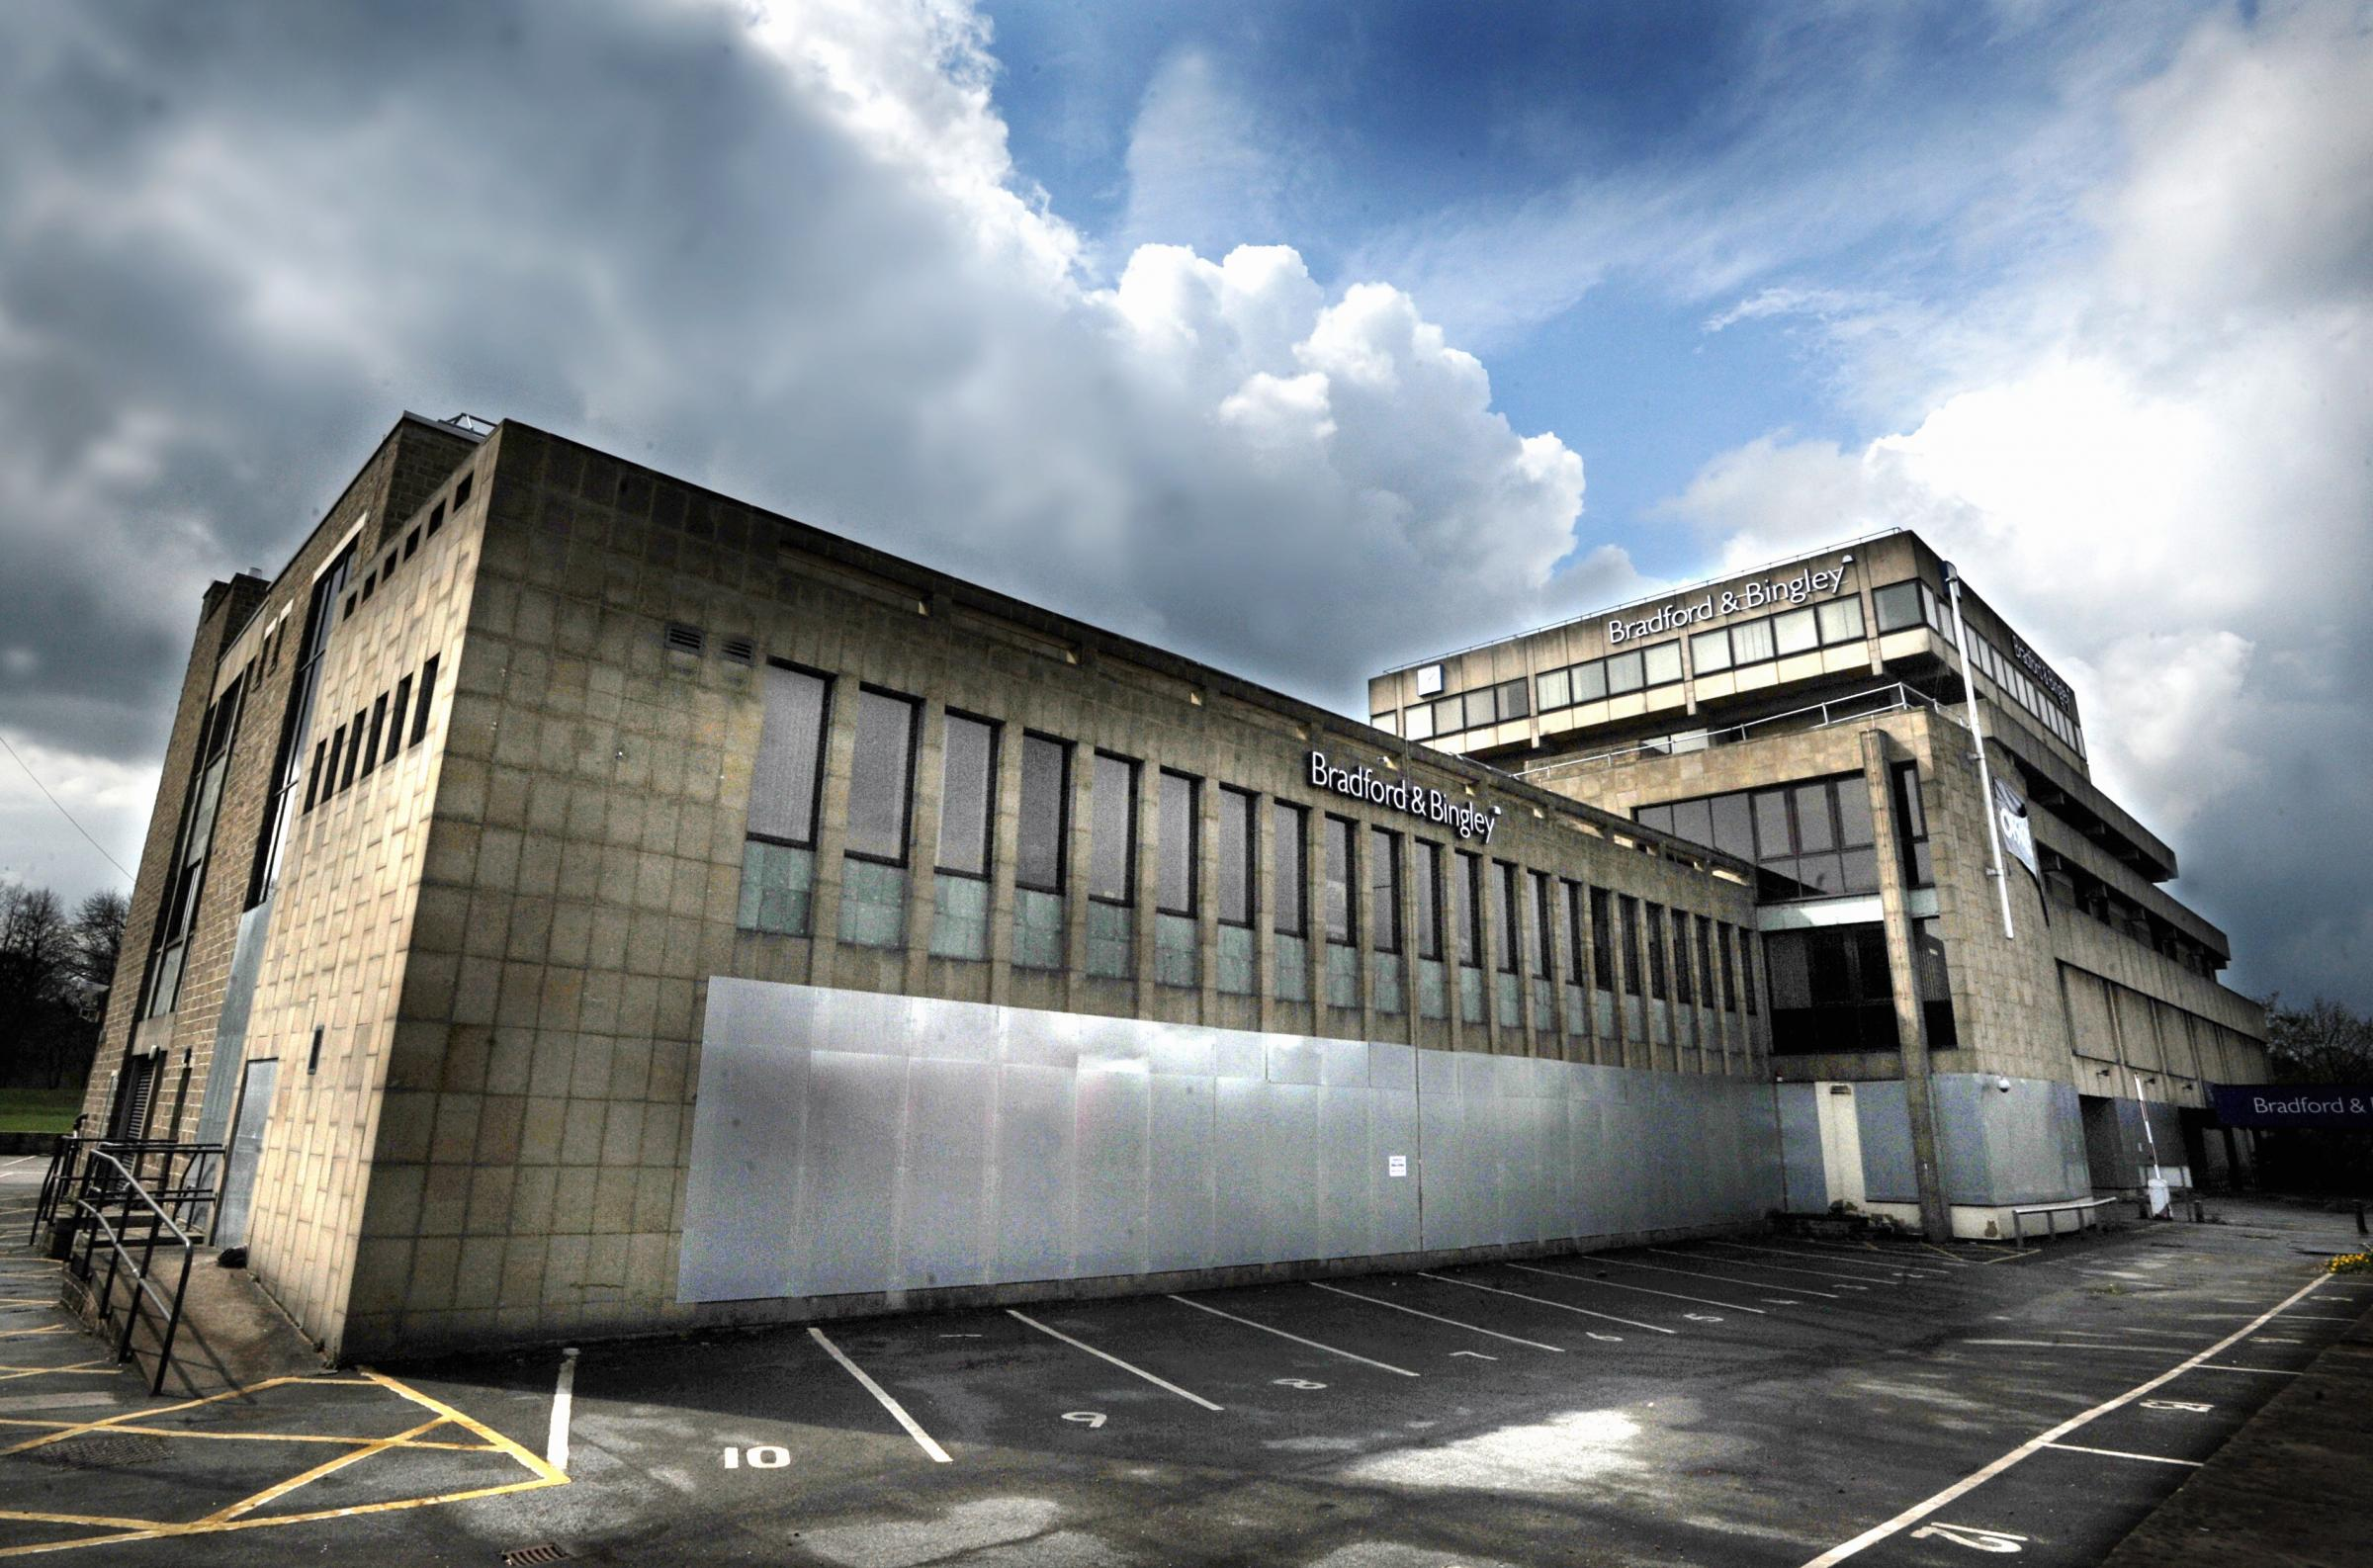 Hibernating bats delay former Bradford & Bingley HQ demolition